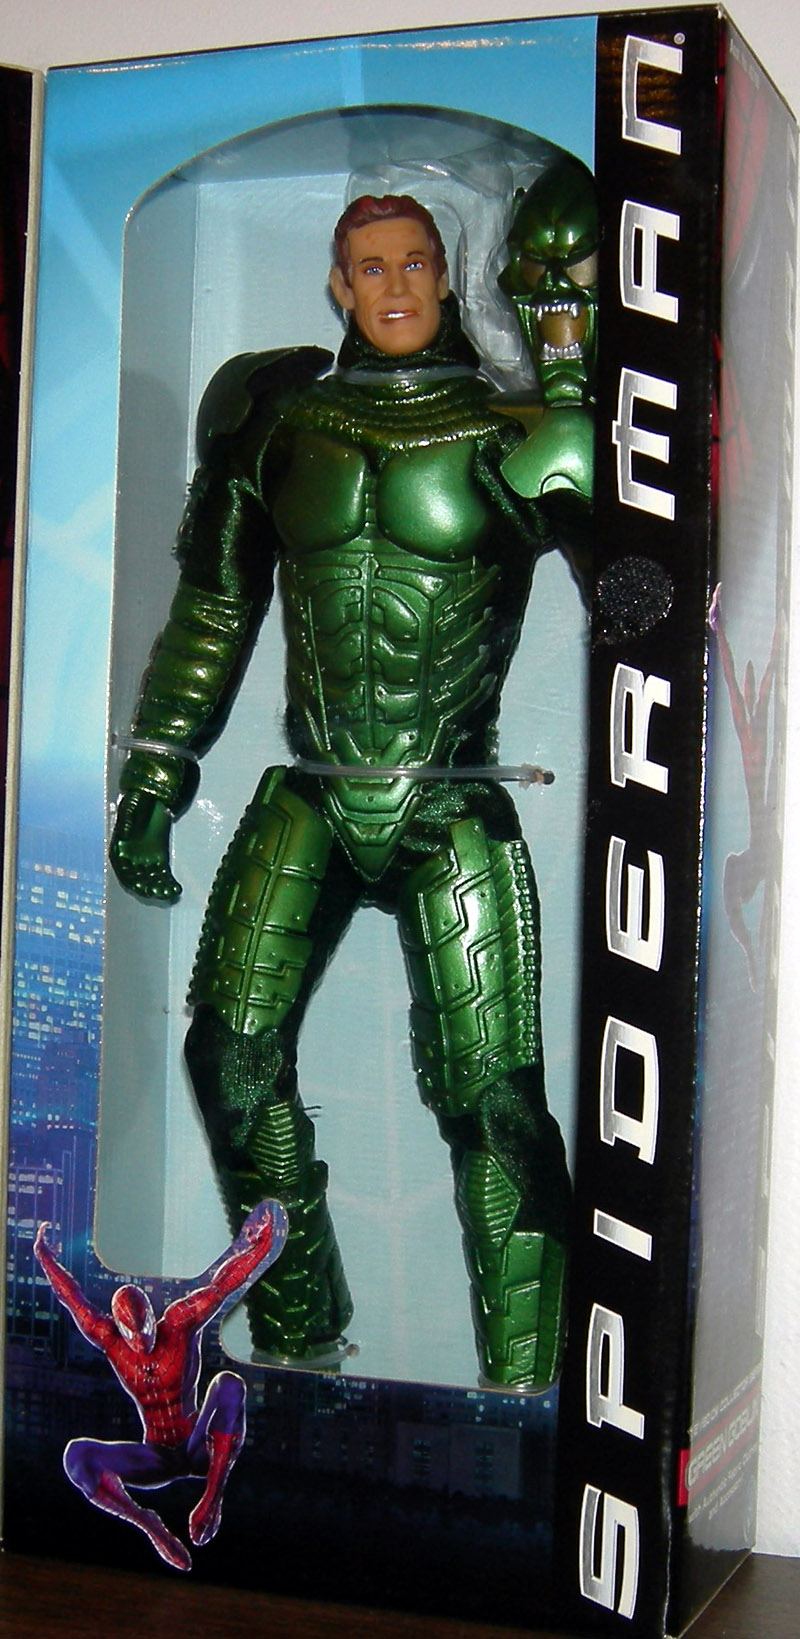 12inchcollectorgreengoblin.jpg